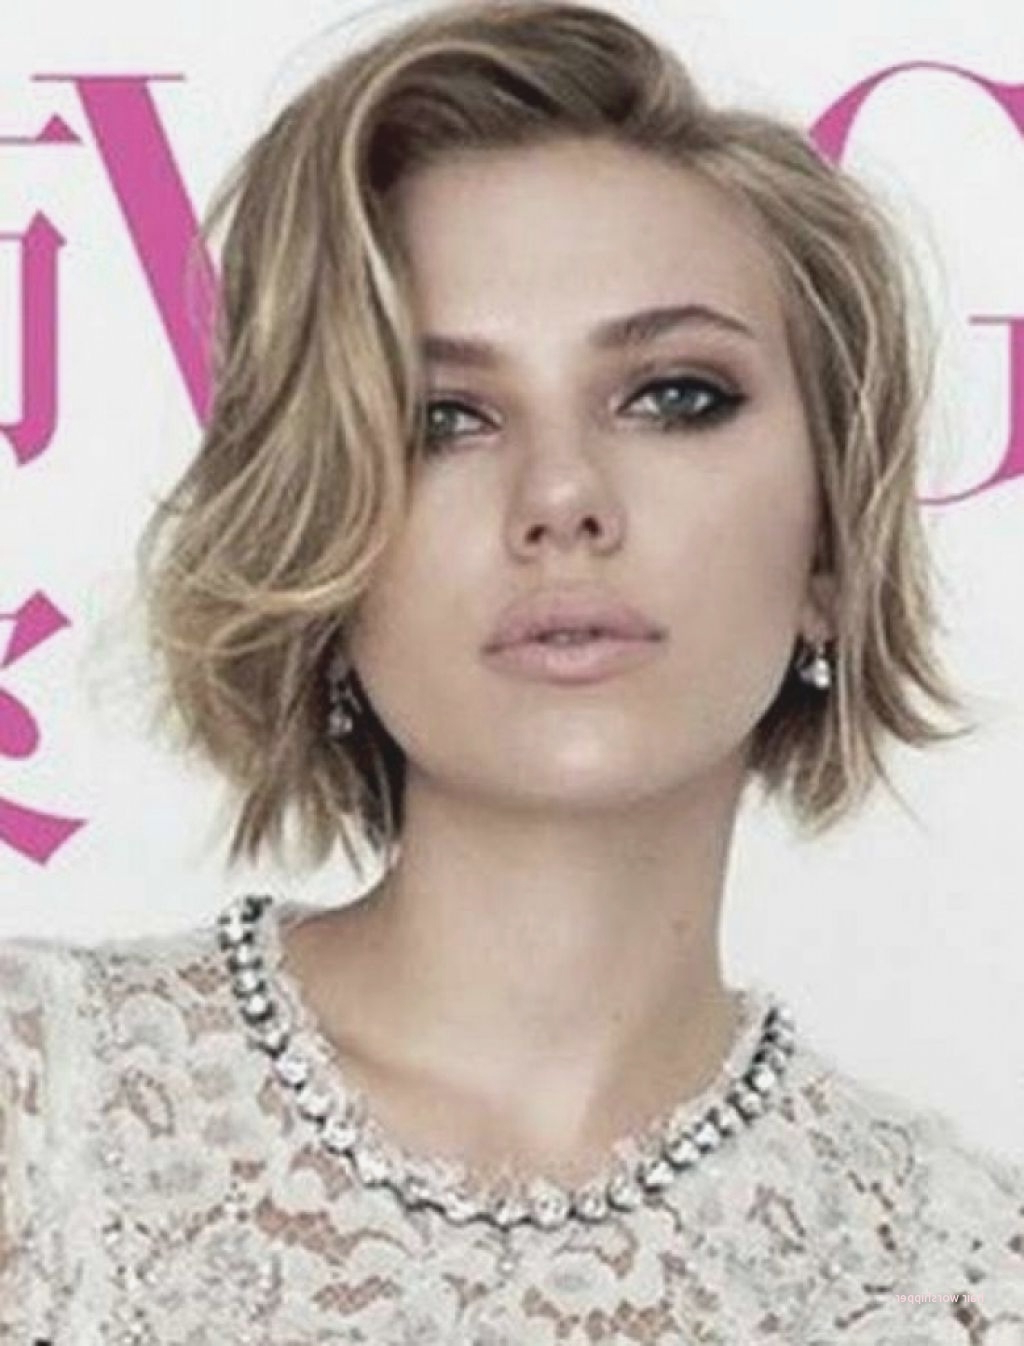 Short Haircuts For Thick Wavy Hair Square Face Elegant ˆš 24 Fresh Intended For Short Hairstyles For Square Faces And Thick Hair (View 10 of 25)